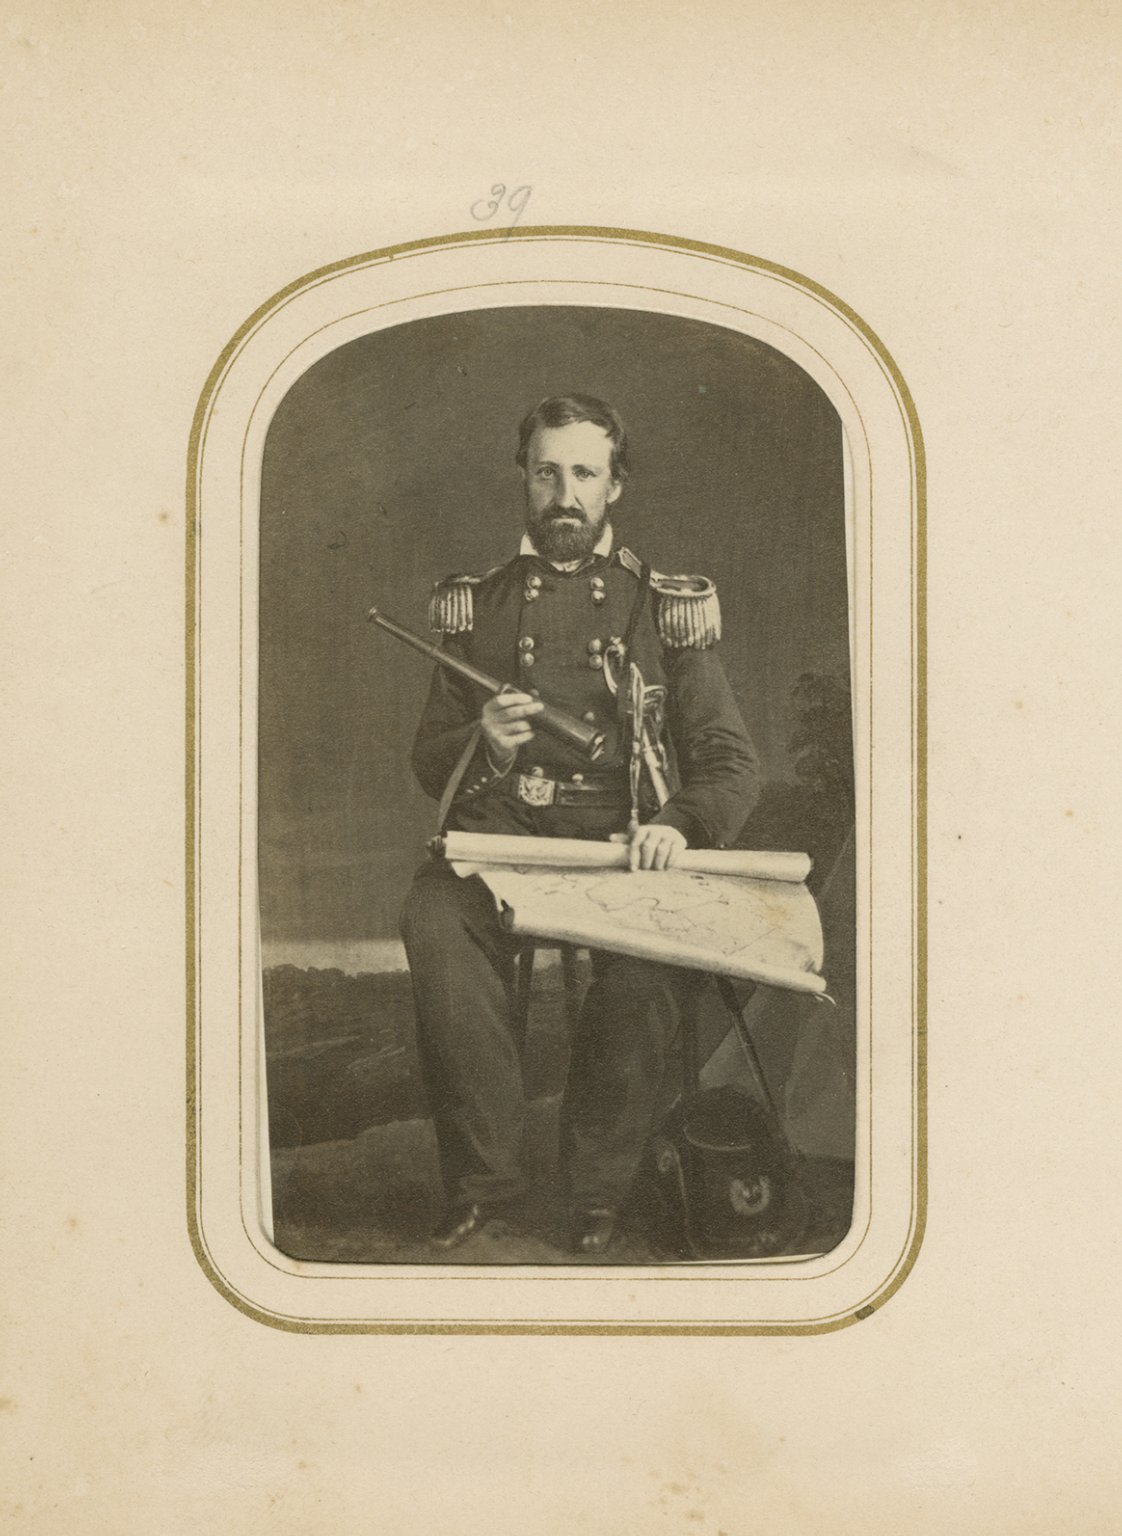 Gen. William S. Rosecrans